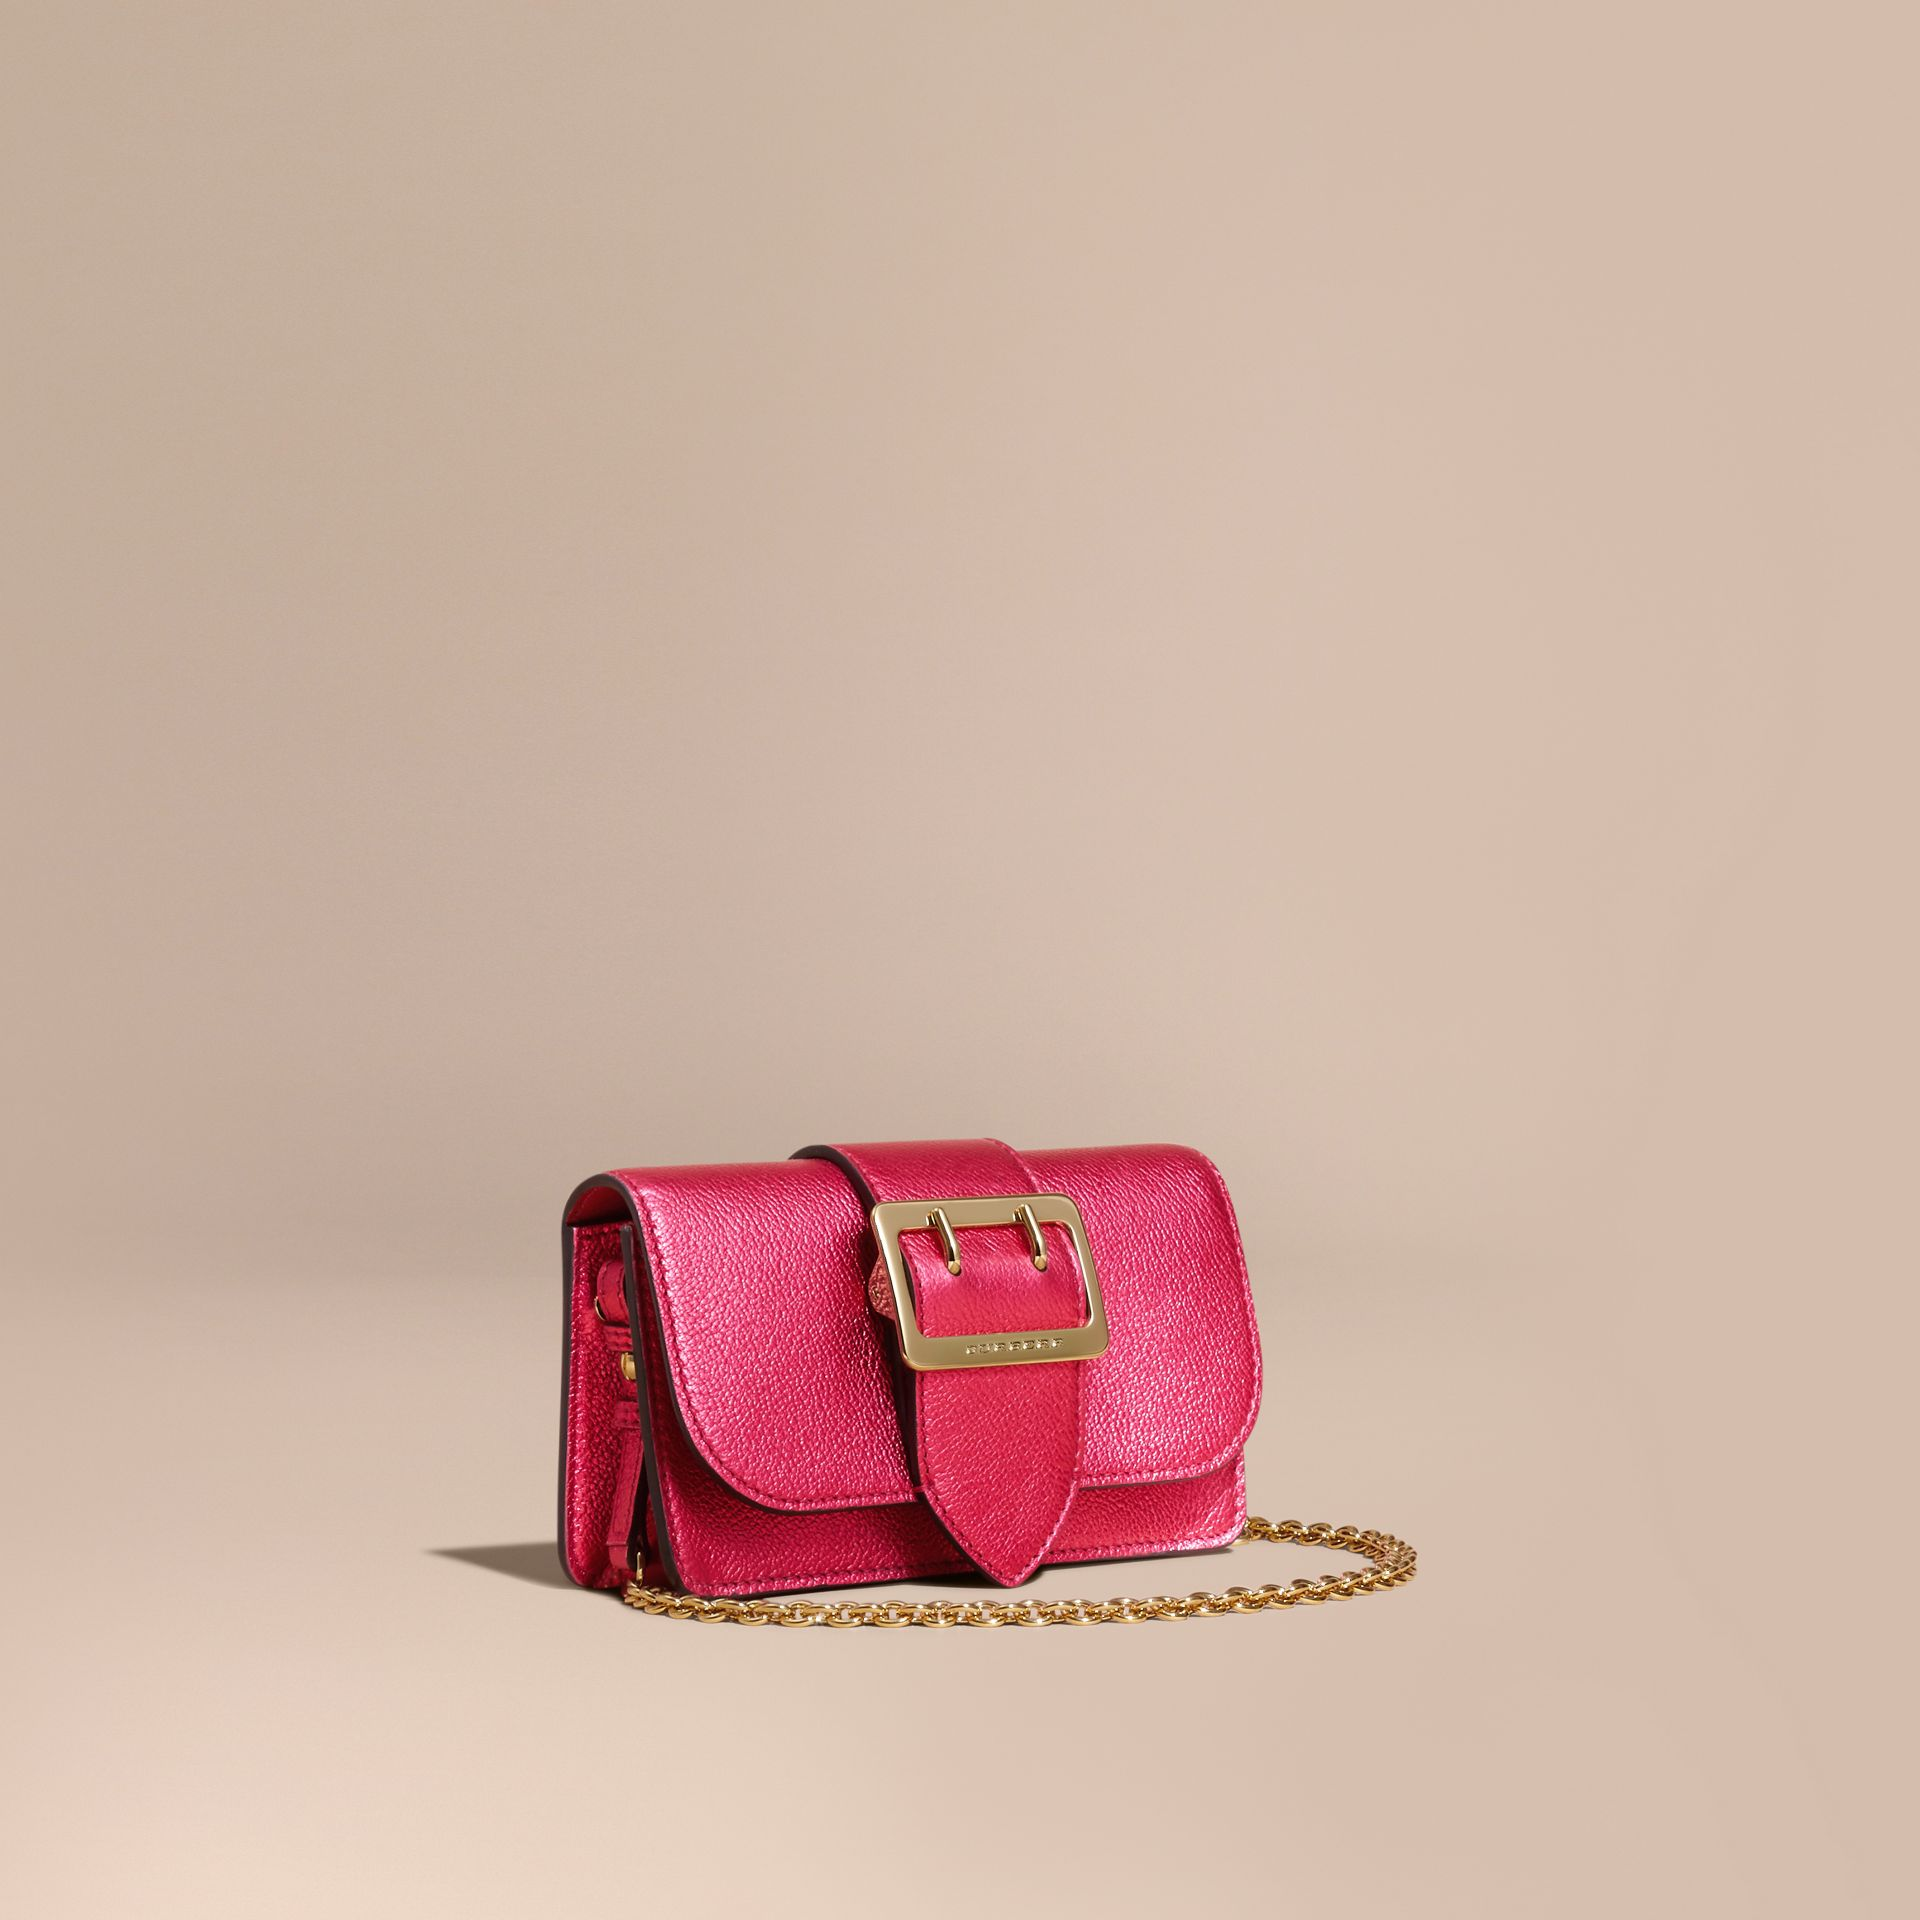 Rosa intenso Borsa The Buckle mini in pelle a grana metallizzata Rosa Intenso - immagine della galleria 1